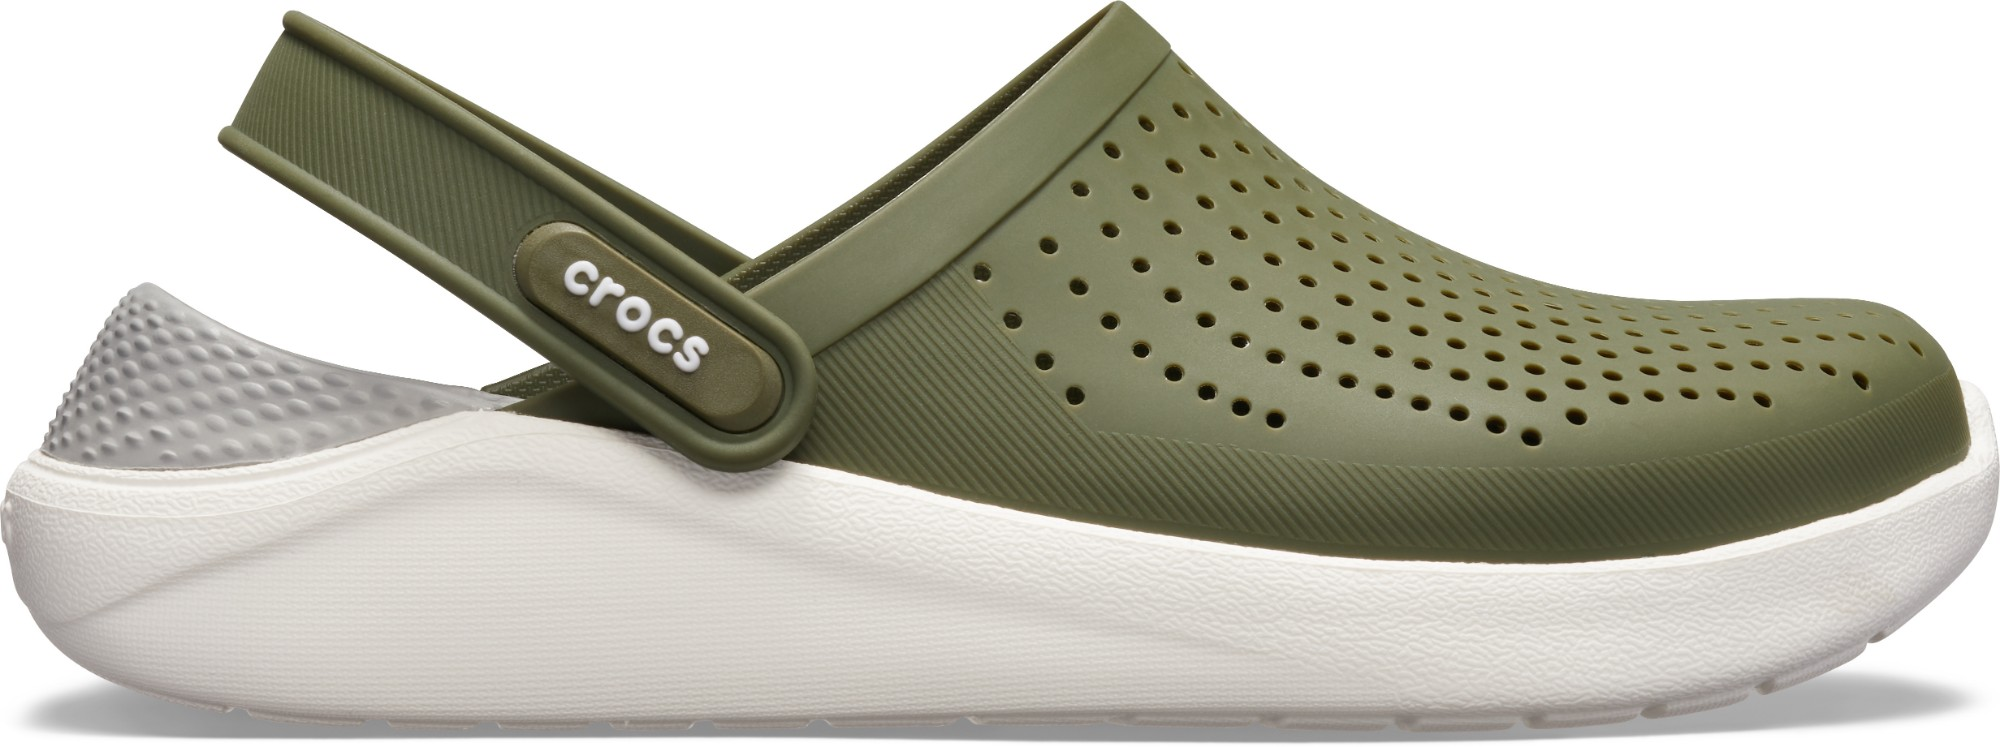 Crocs™ LiteRide Clog Army Green/White 44,5